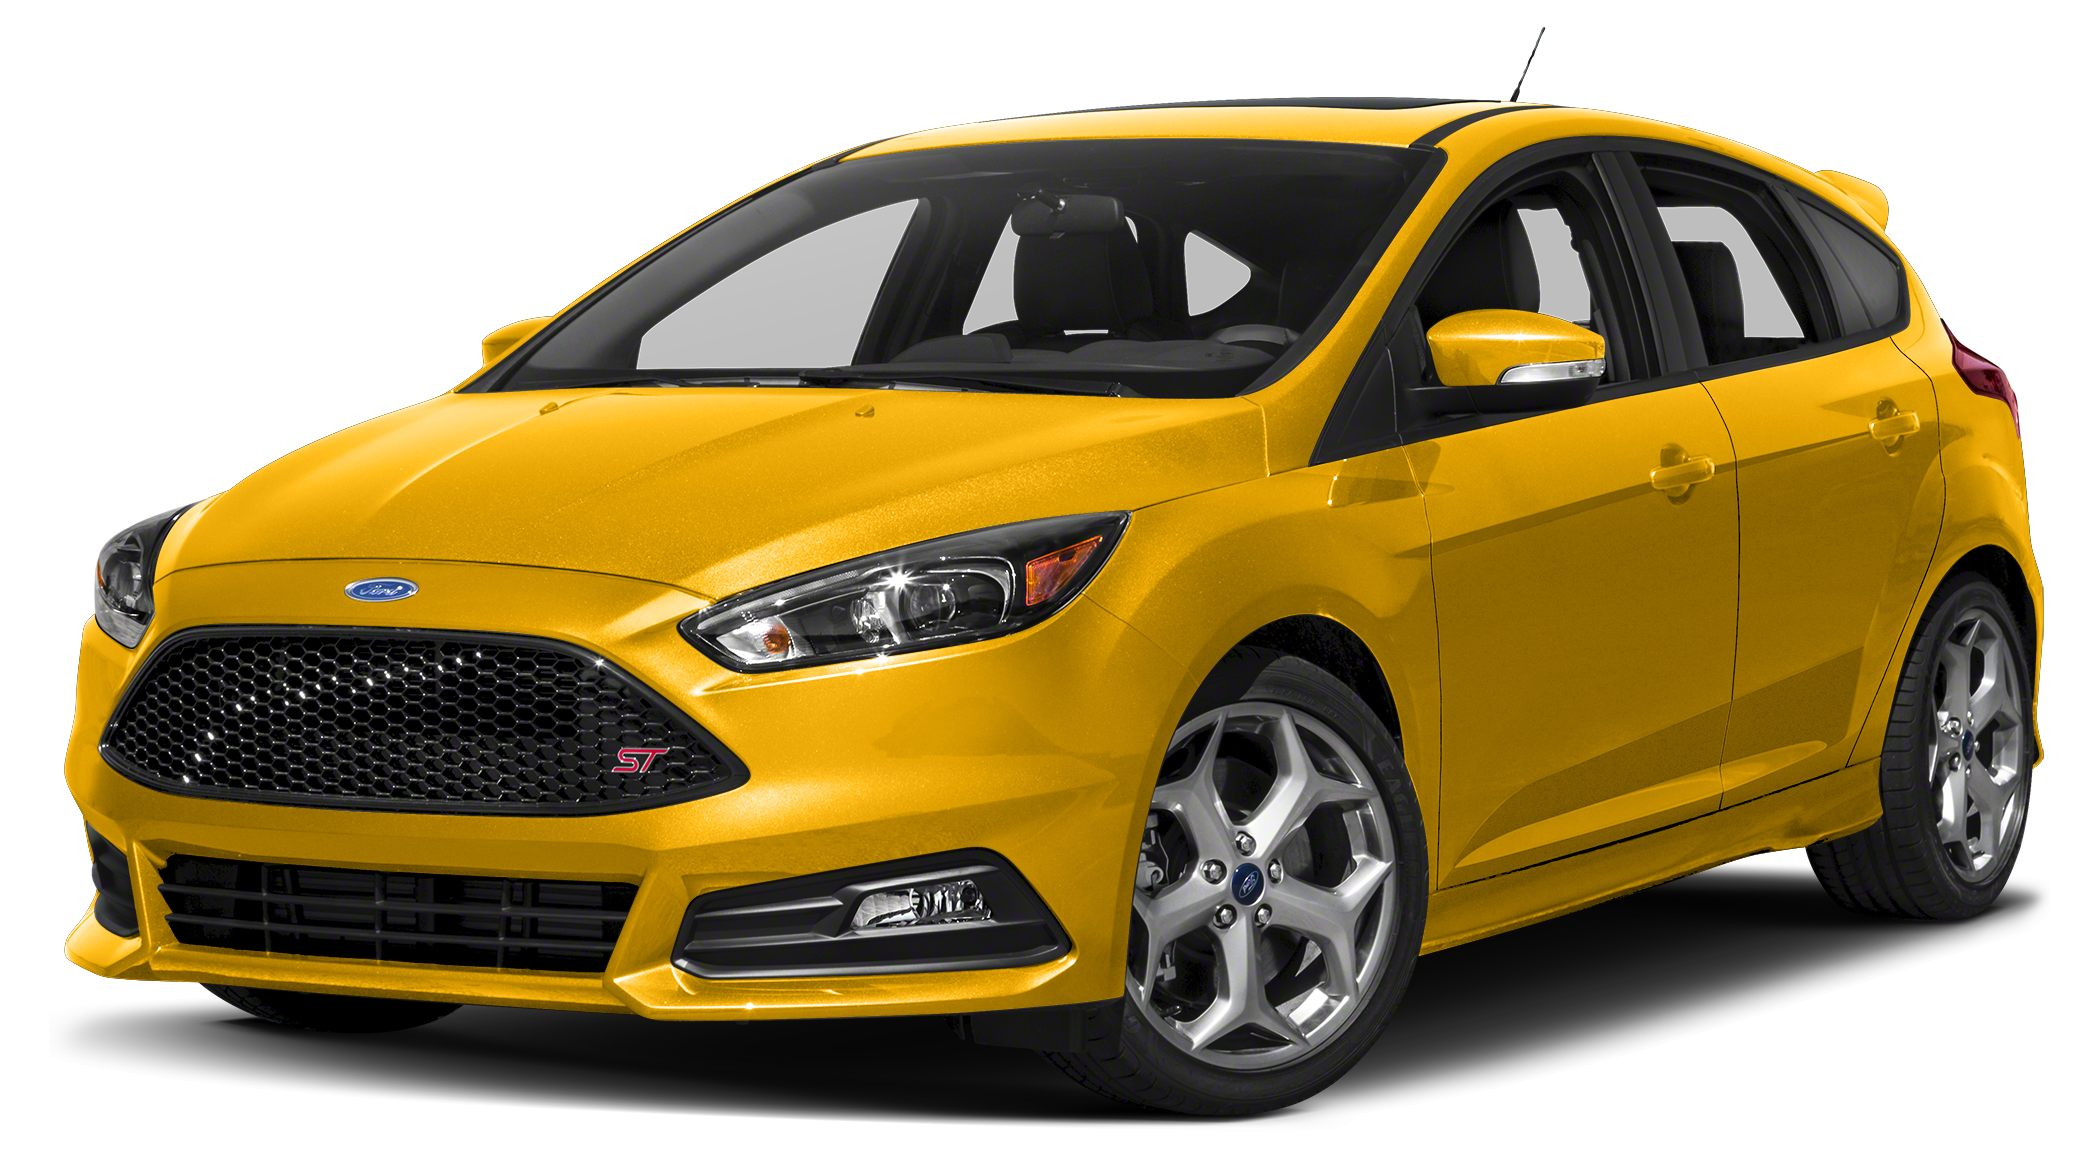 2016 Ford Focus ST Base KEY FACTORY FEATURES 2016 ST2 HATCHBACK WITH TOUCH SCREEN MAP NAVIGATION